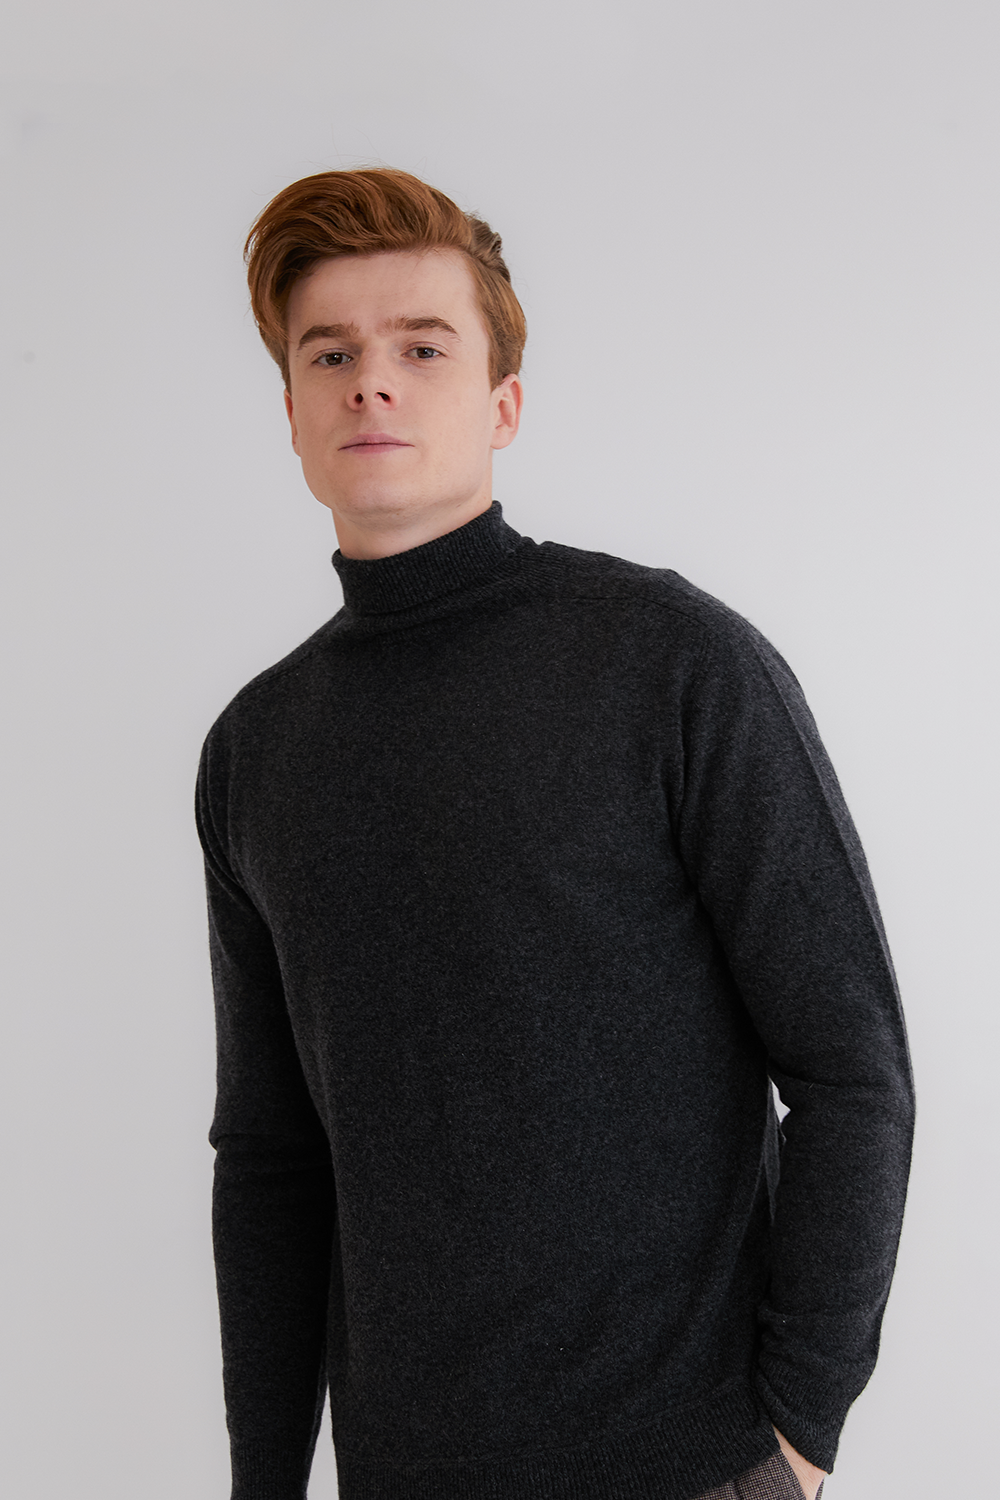 Pure cashmere100 turtleneck sweater by whole-garment knitting - Charcoal black (인기 상품/ L사이즈 품절)